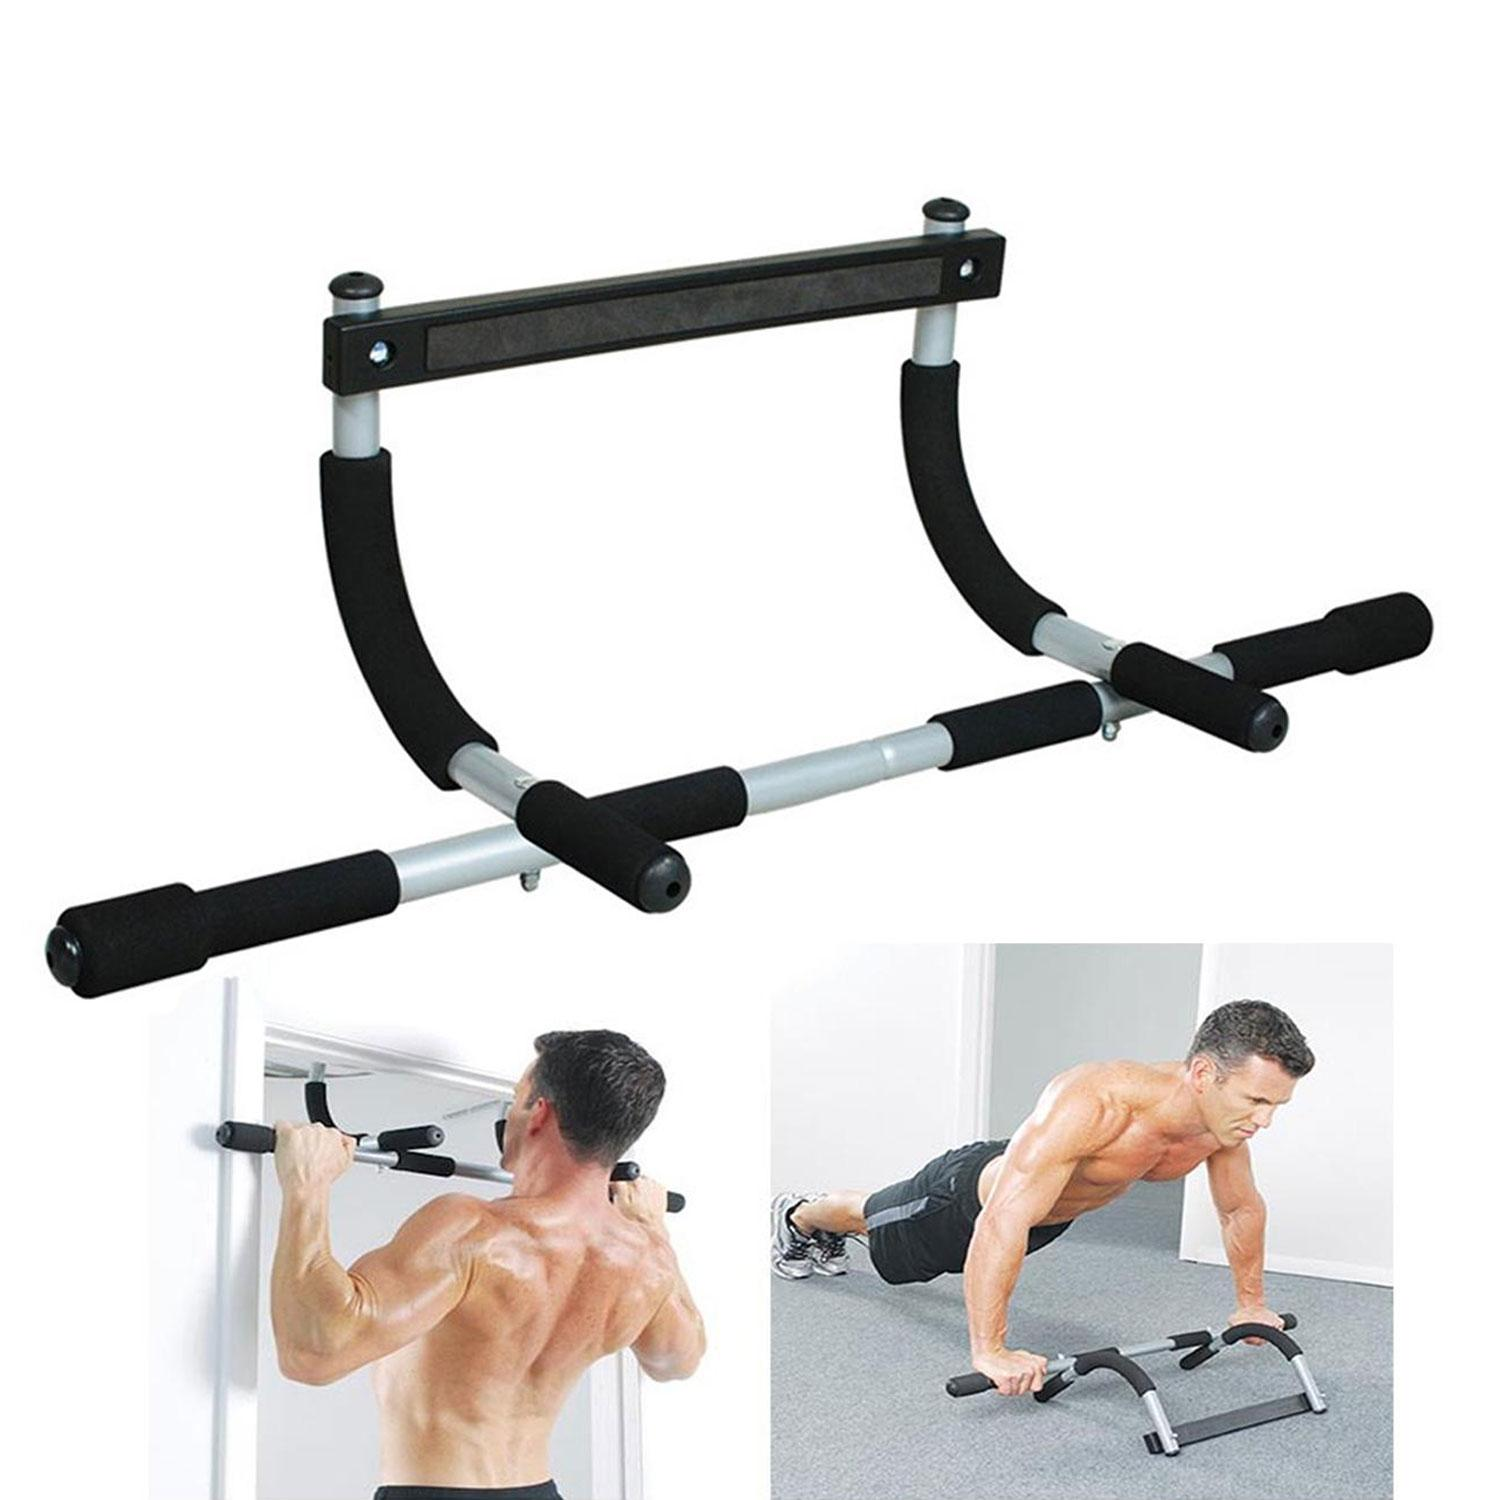 52008c49e8a Pull Up Bars for sale - Push Up Bars online brands